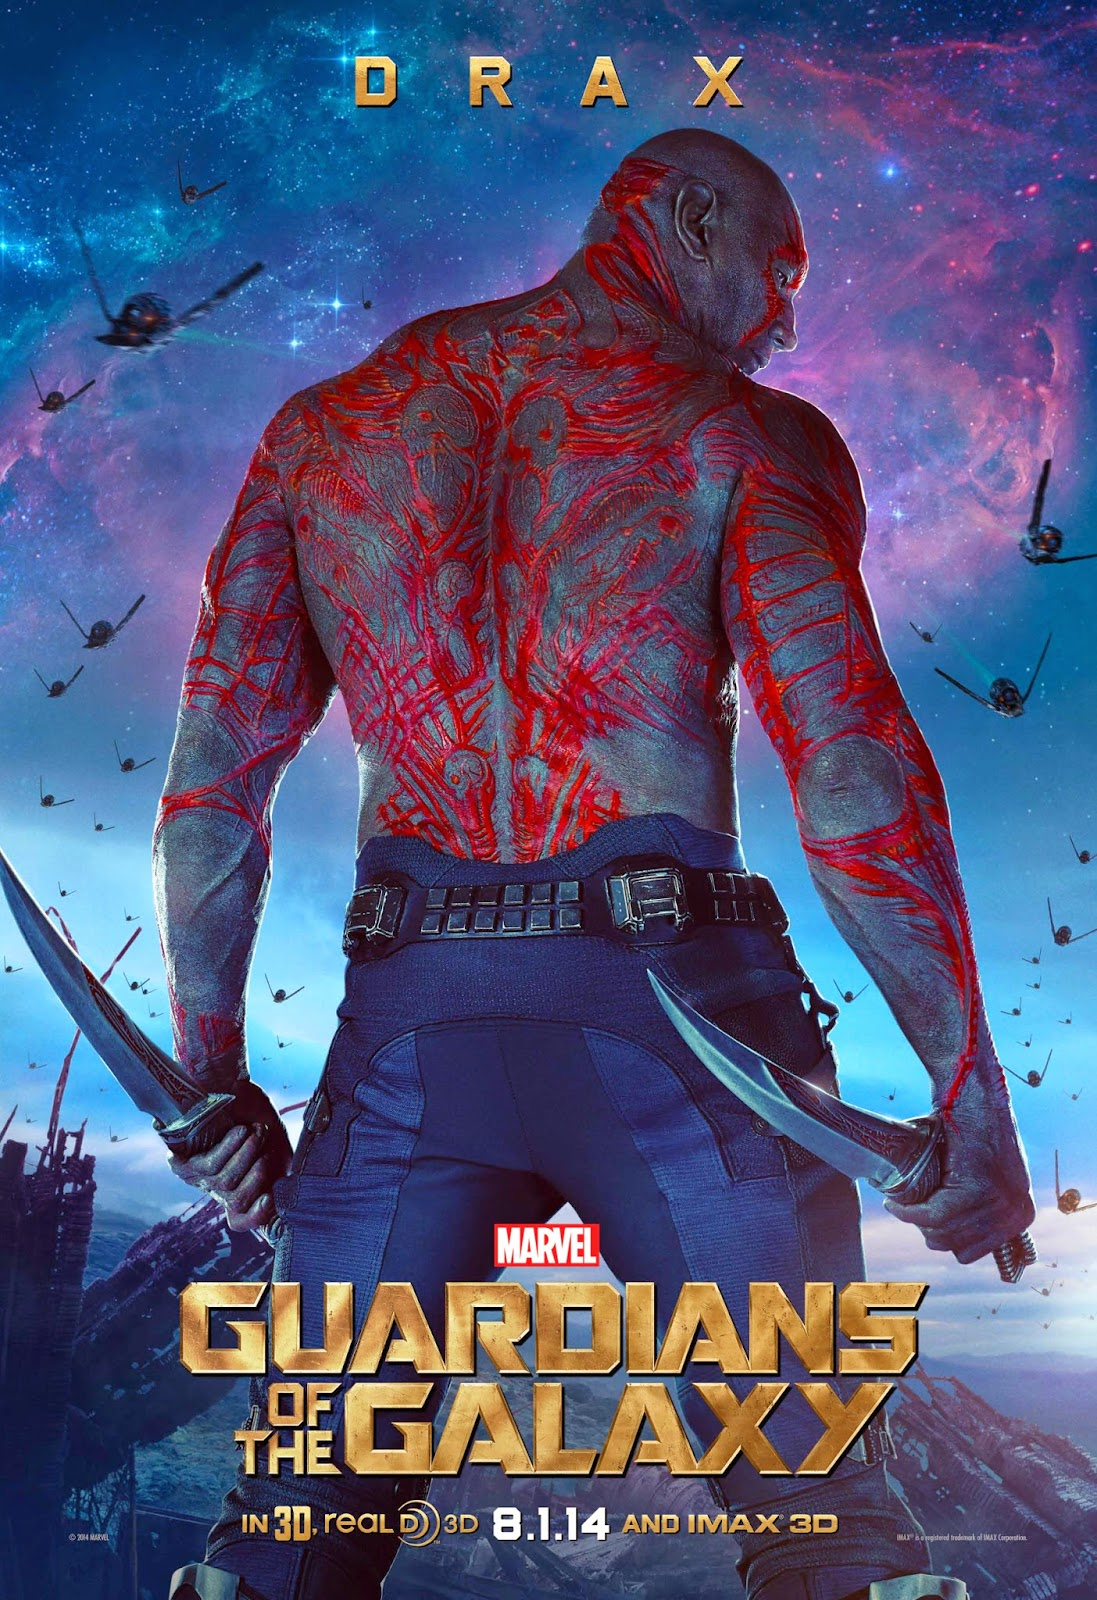 GUARDIANS OF THE GALAXY-Official Poster Banner PROMO CHAR-12JUNHO2014-02